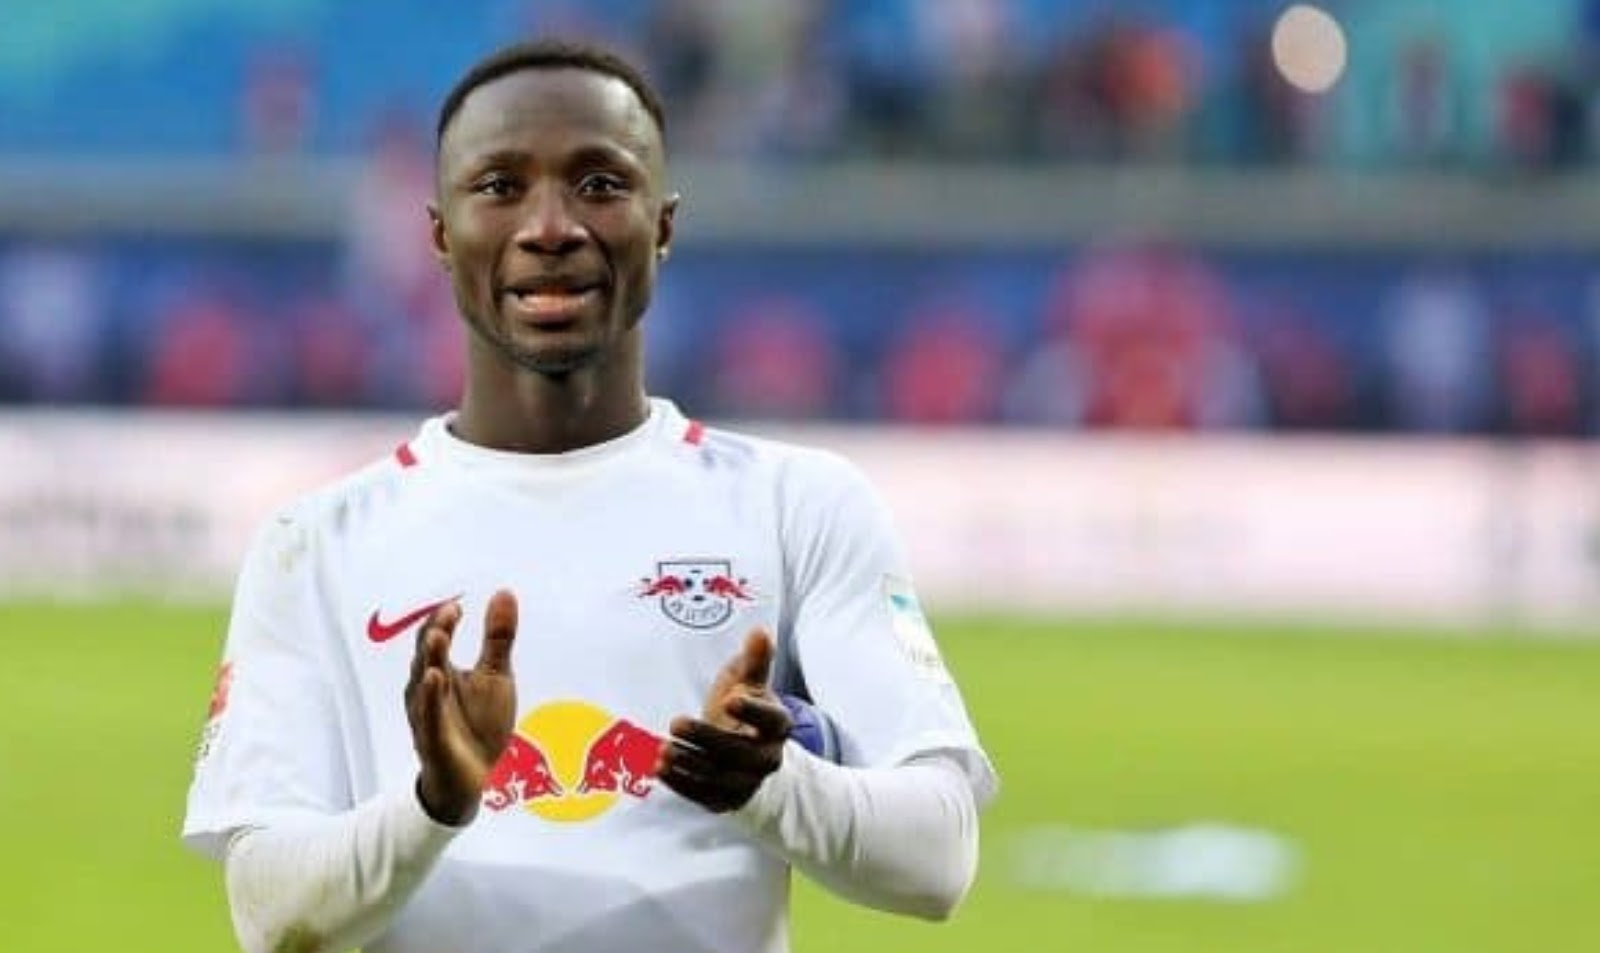 Naby Keita second highest transfer fees player Liverpool 2018